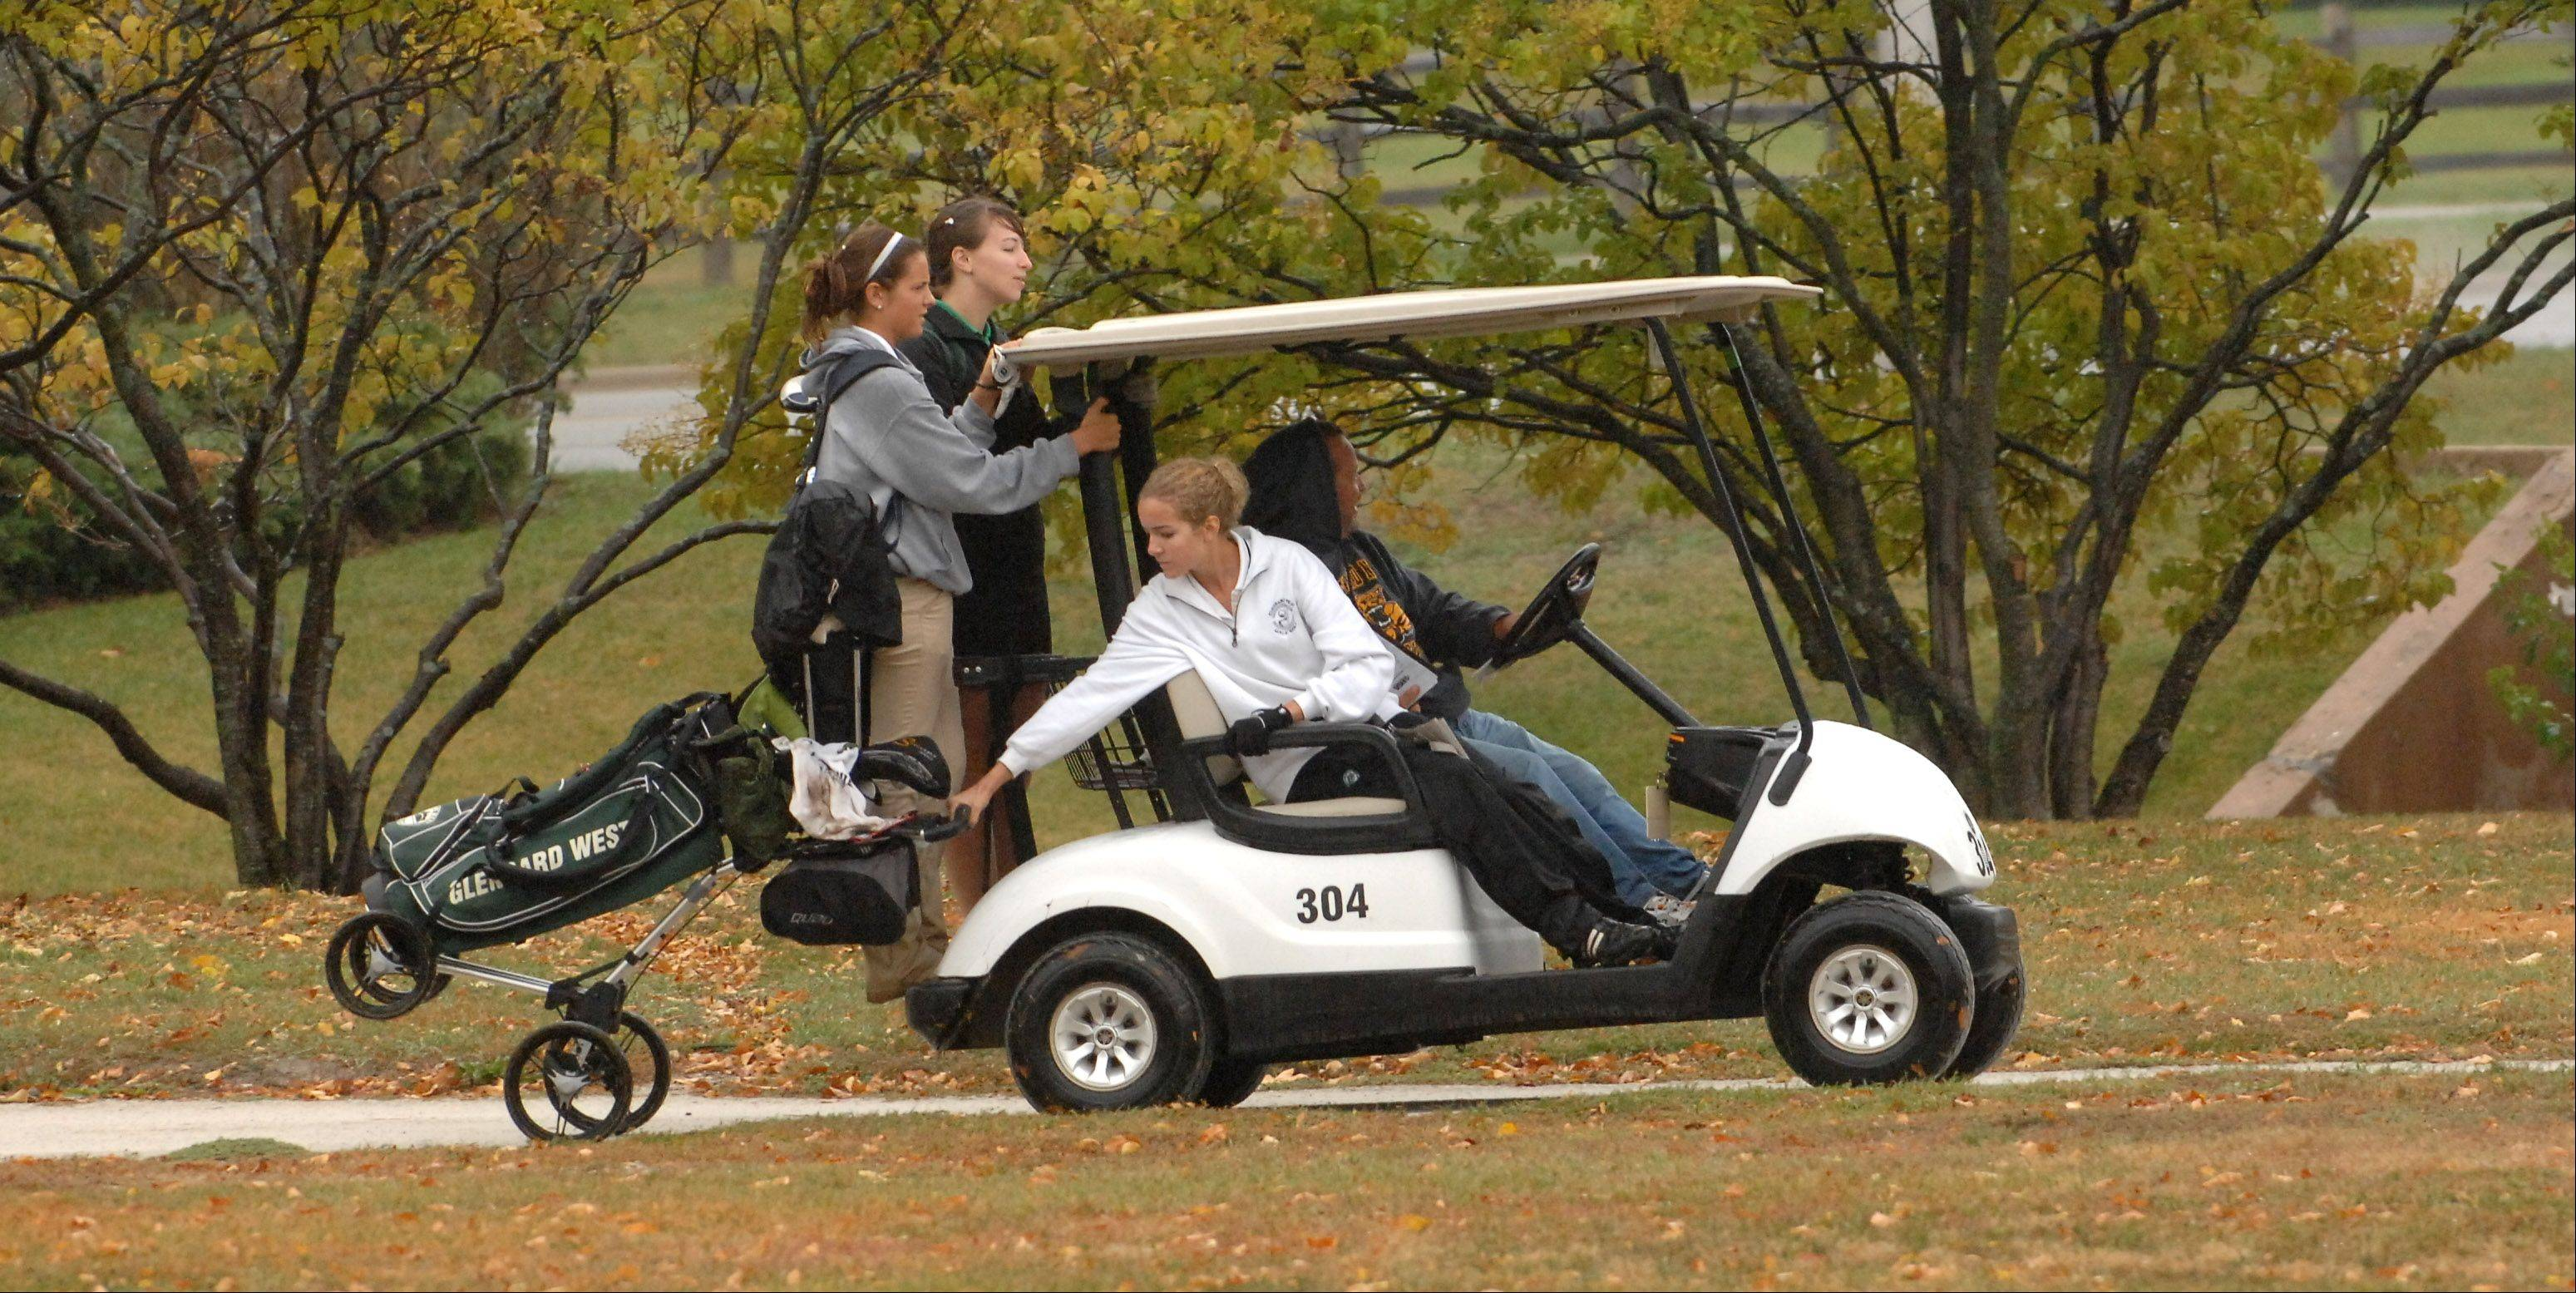 A soaking rain dogged the golfers at Wednesday's York girls golf regional at Maple Meadows Golf Course in Wood Dale. From left, Tessa Dittmann from West Chicago, Kerri Carlquist from York, and Emma Klimala from Glenbard West, get a lift from the 3rd green to the 4th tee in the rain.